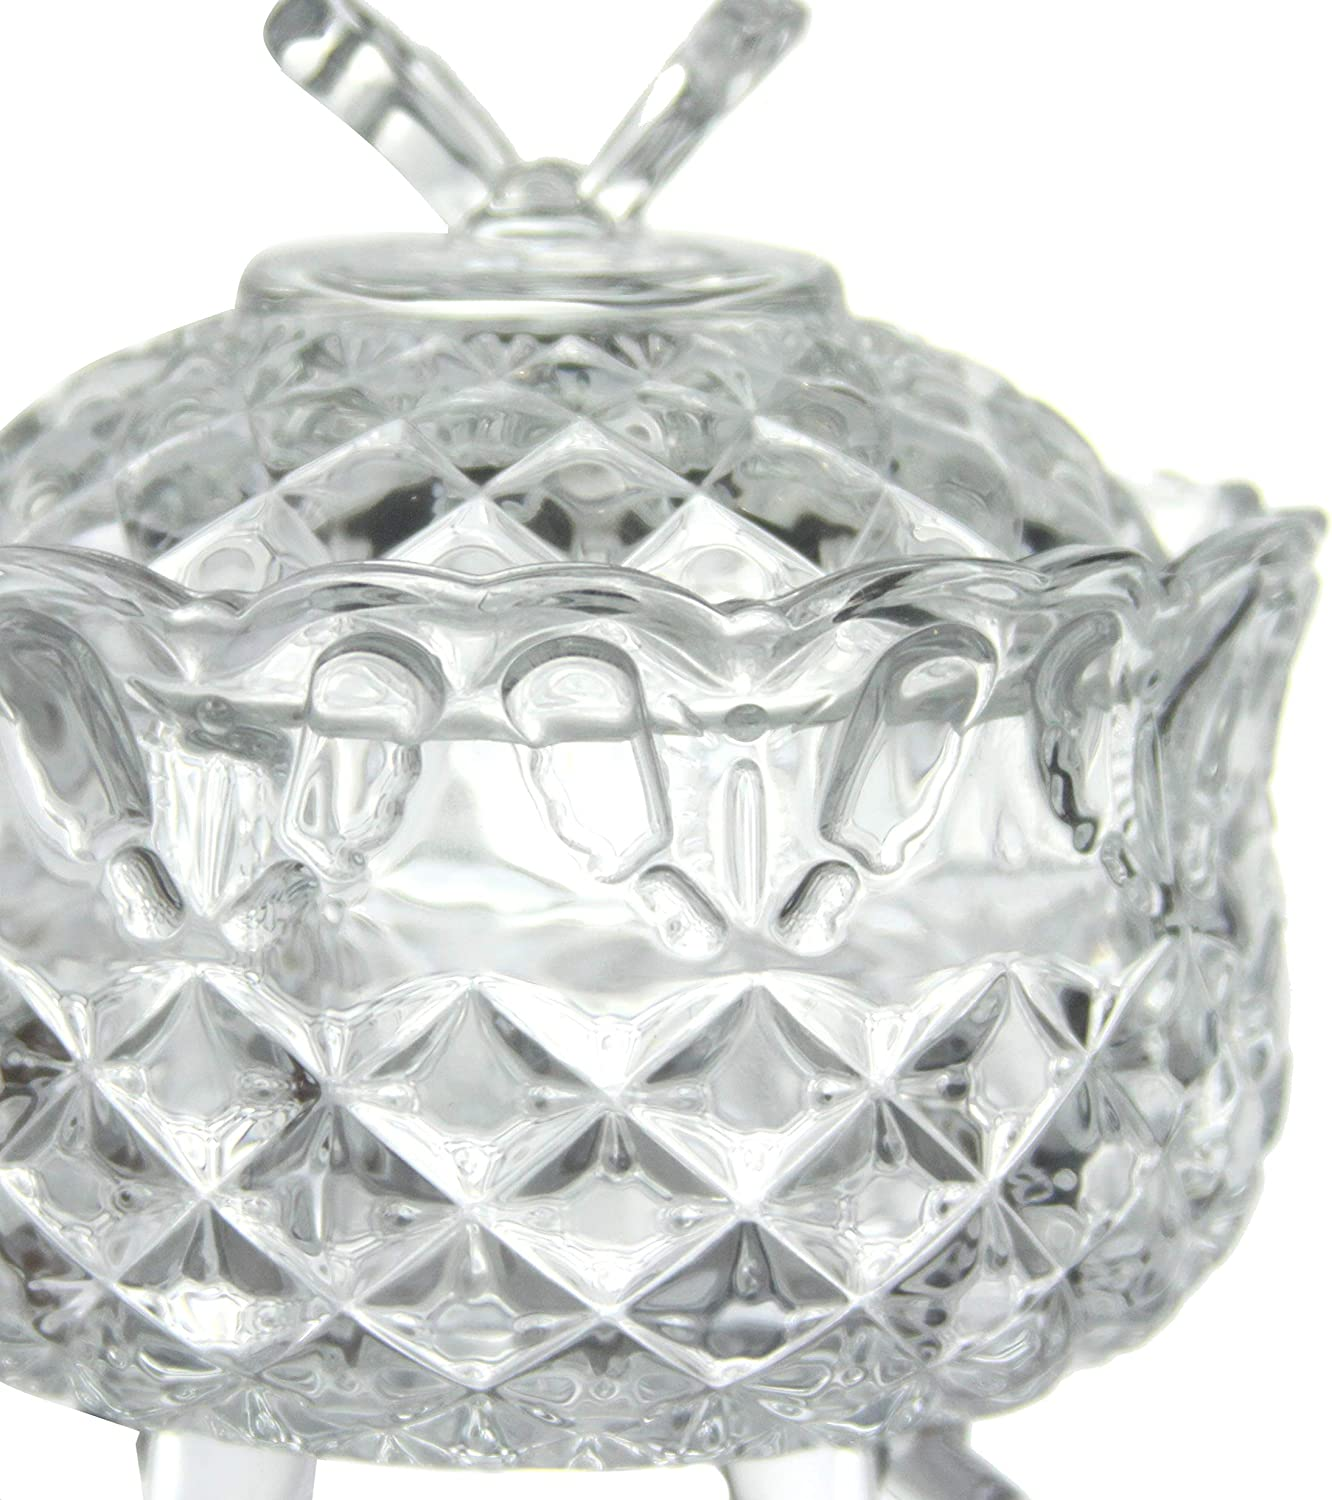 Glass Candy Sweet Bowl Jar with Lid Crystal Cut Look Bonbon Jar Sugar Bowl Small Decorative Chocolate Dish Storage Container Candy Buffet Box Round Footed Clear Butterfly